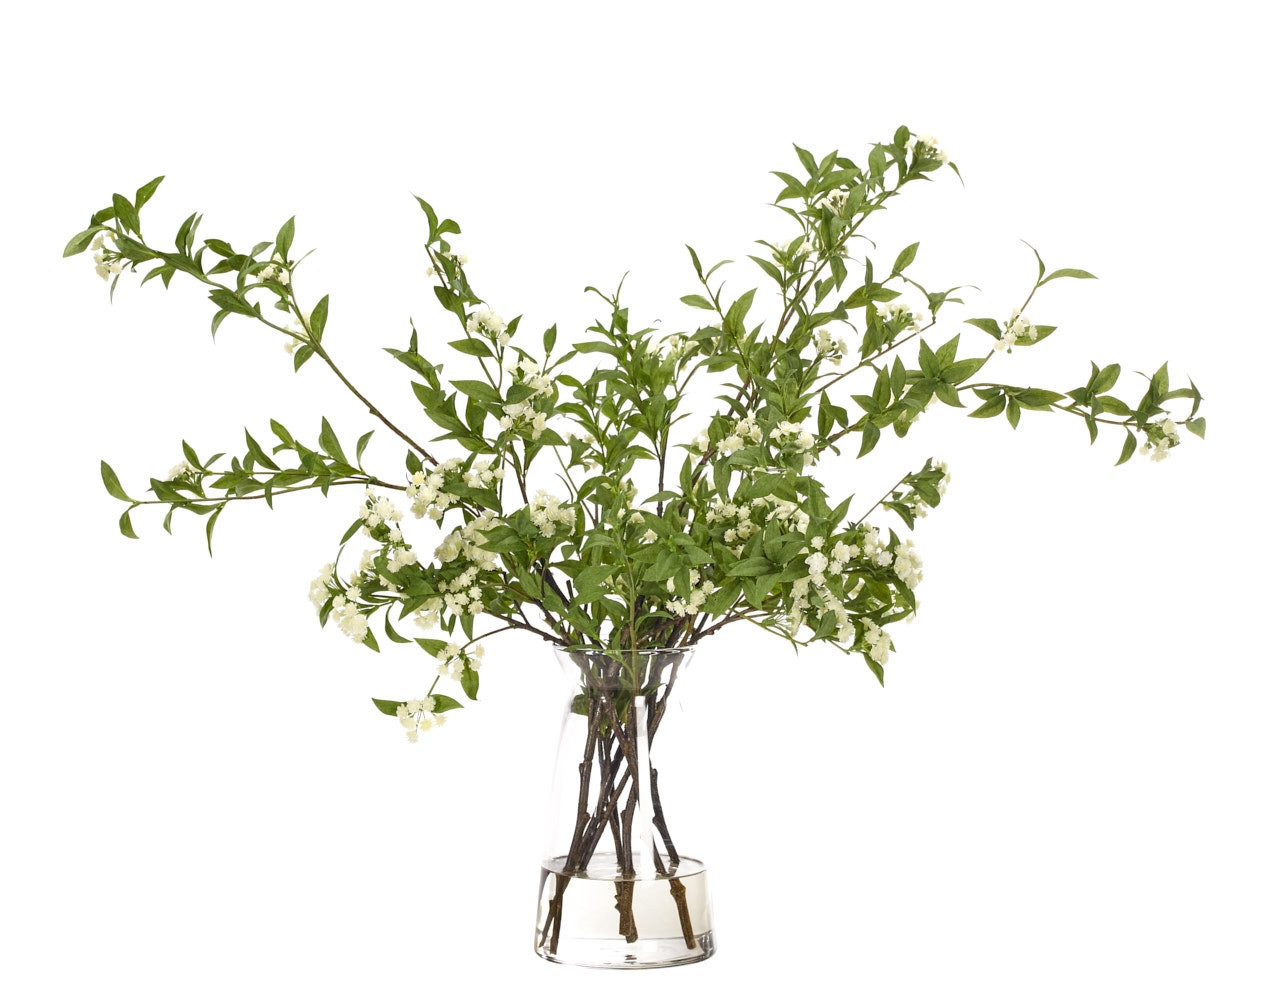 tree branch vase of spiraea branch white cinched glass vase 30wx20dx24h within 2cc831191a07aab801eac0ba8b63